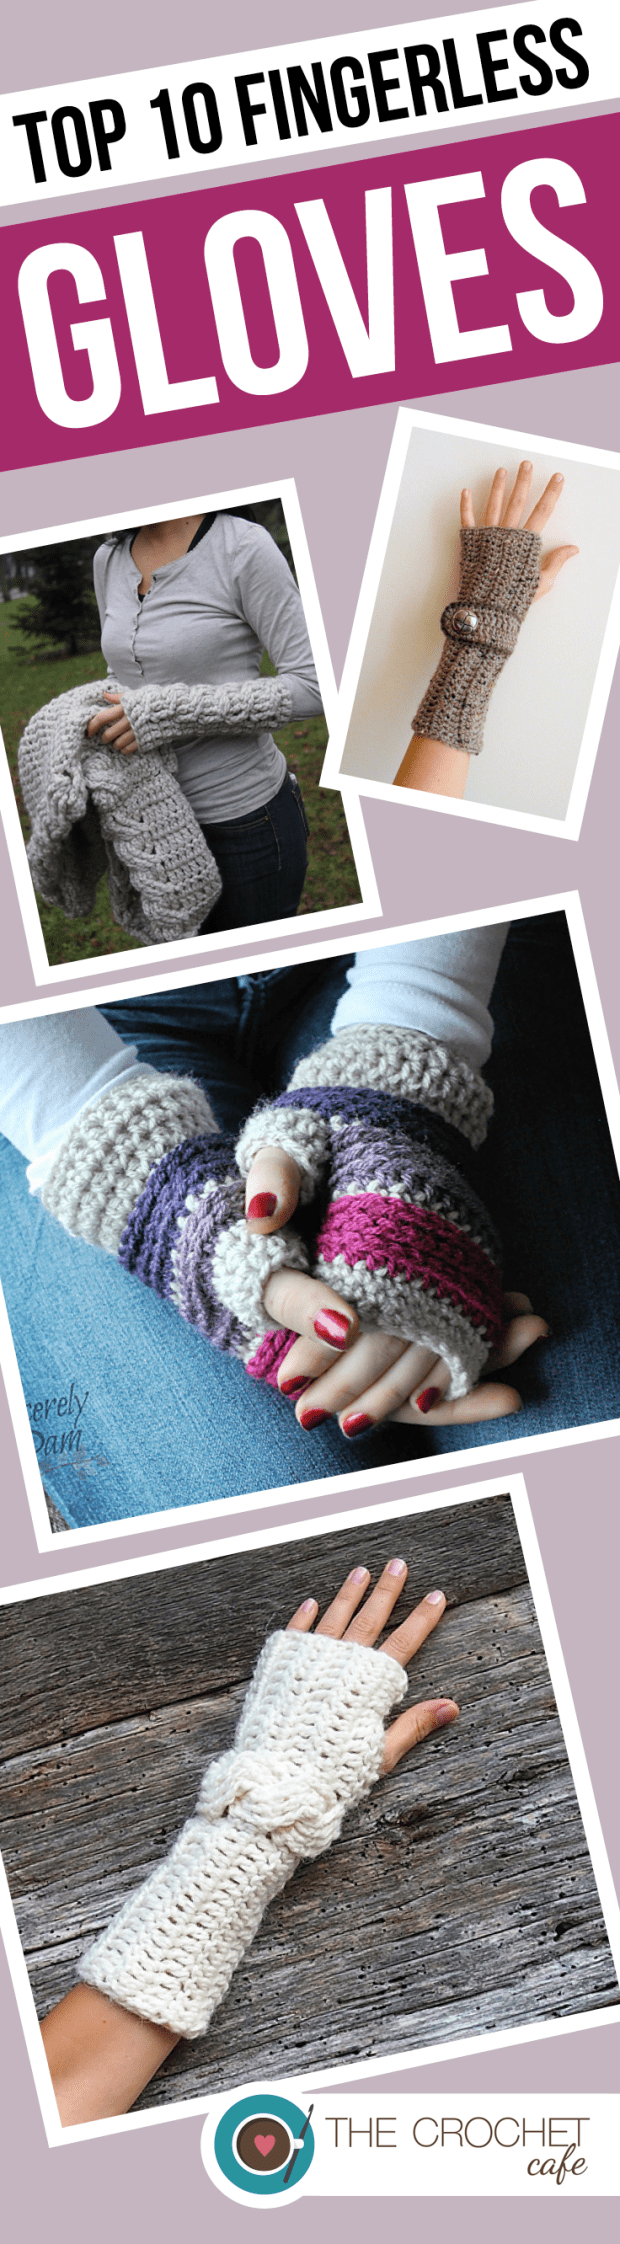 Top 10 Fingerless Gloves (Pinterest)